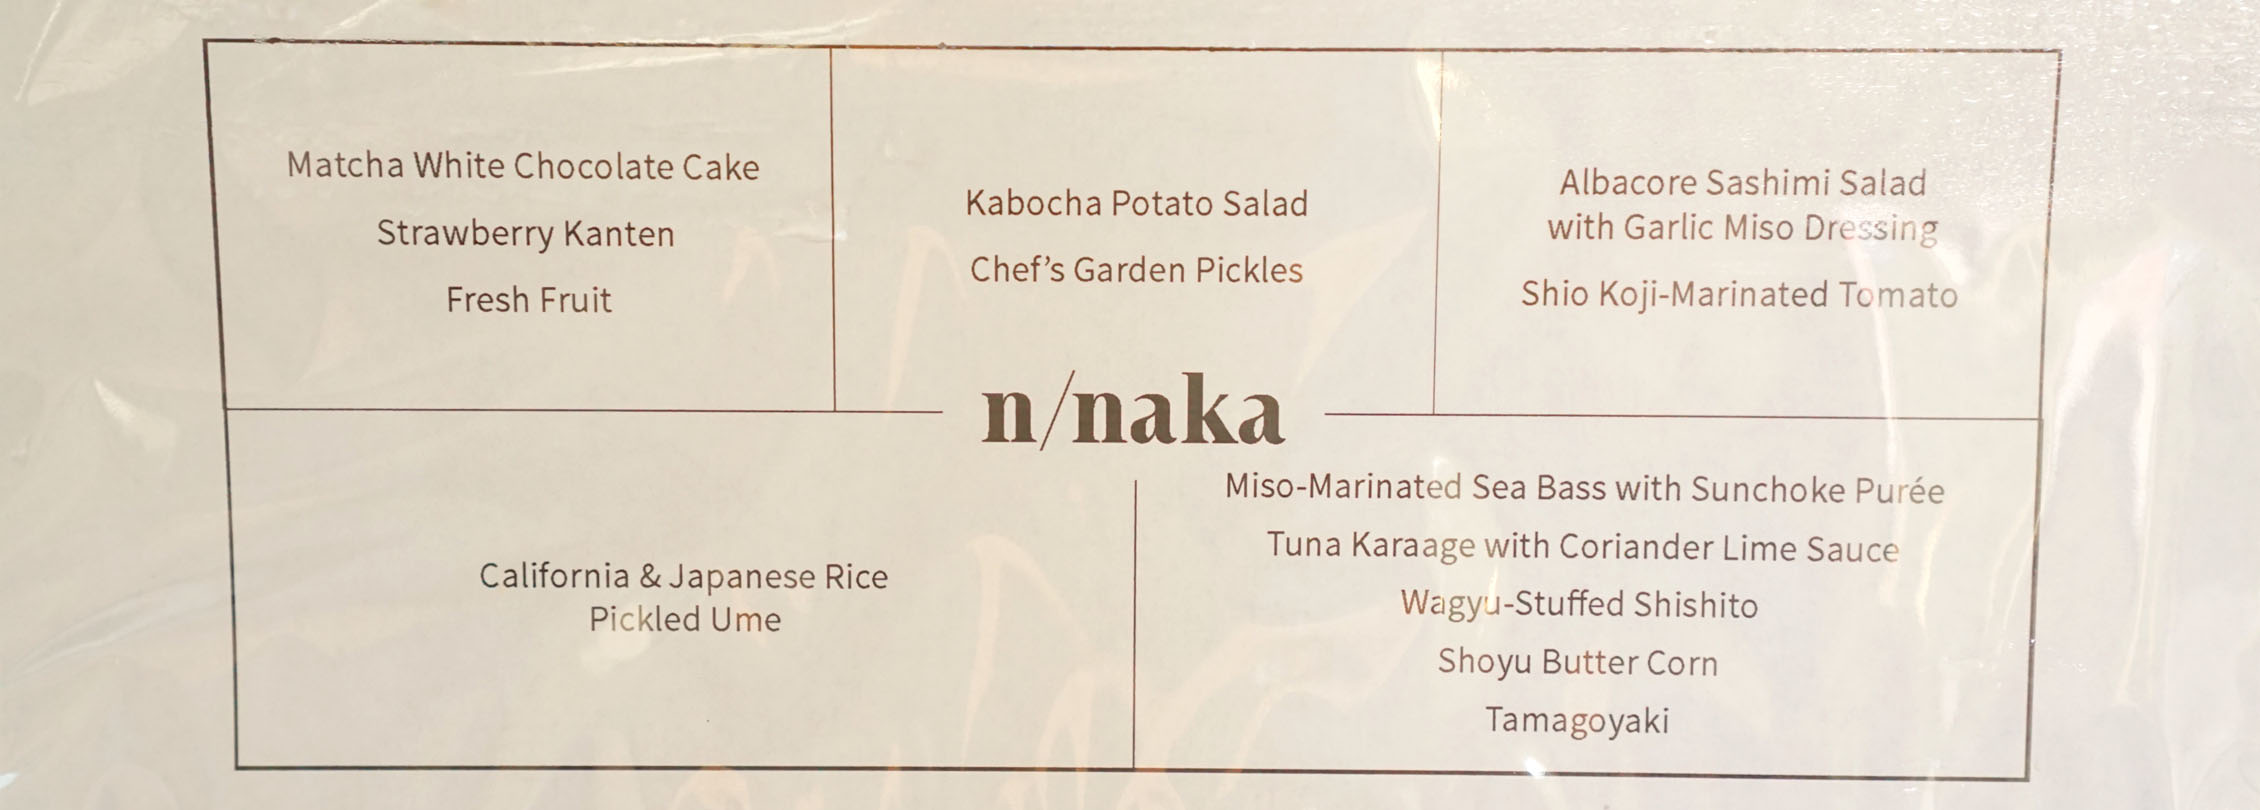 n/naka Bento Box Menu